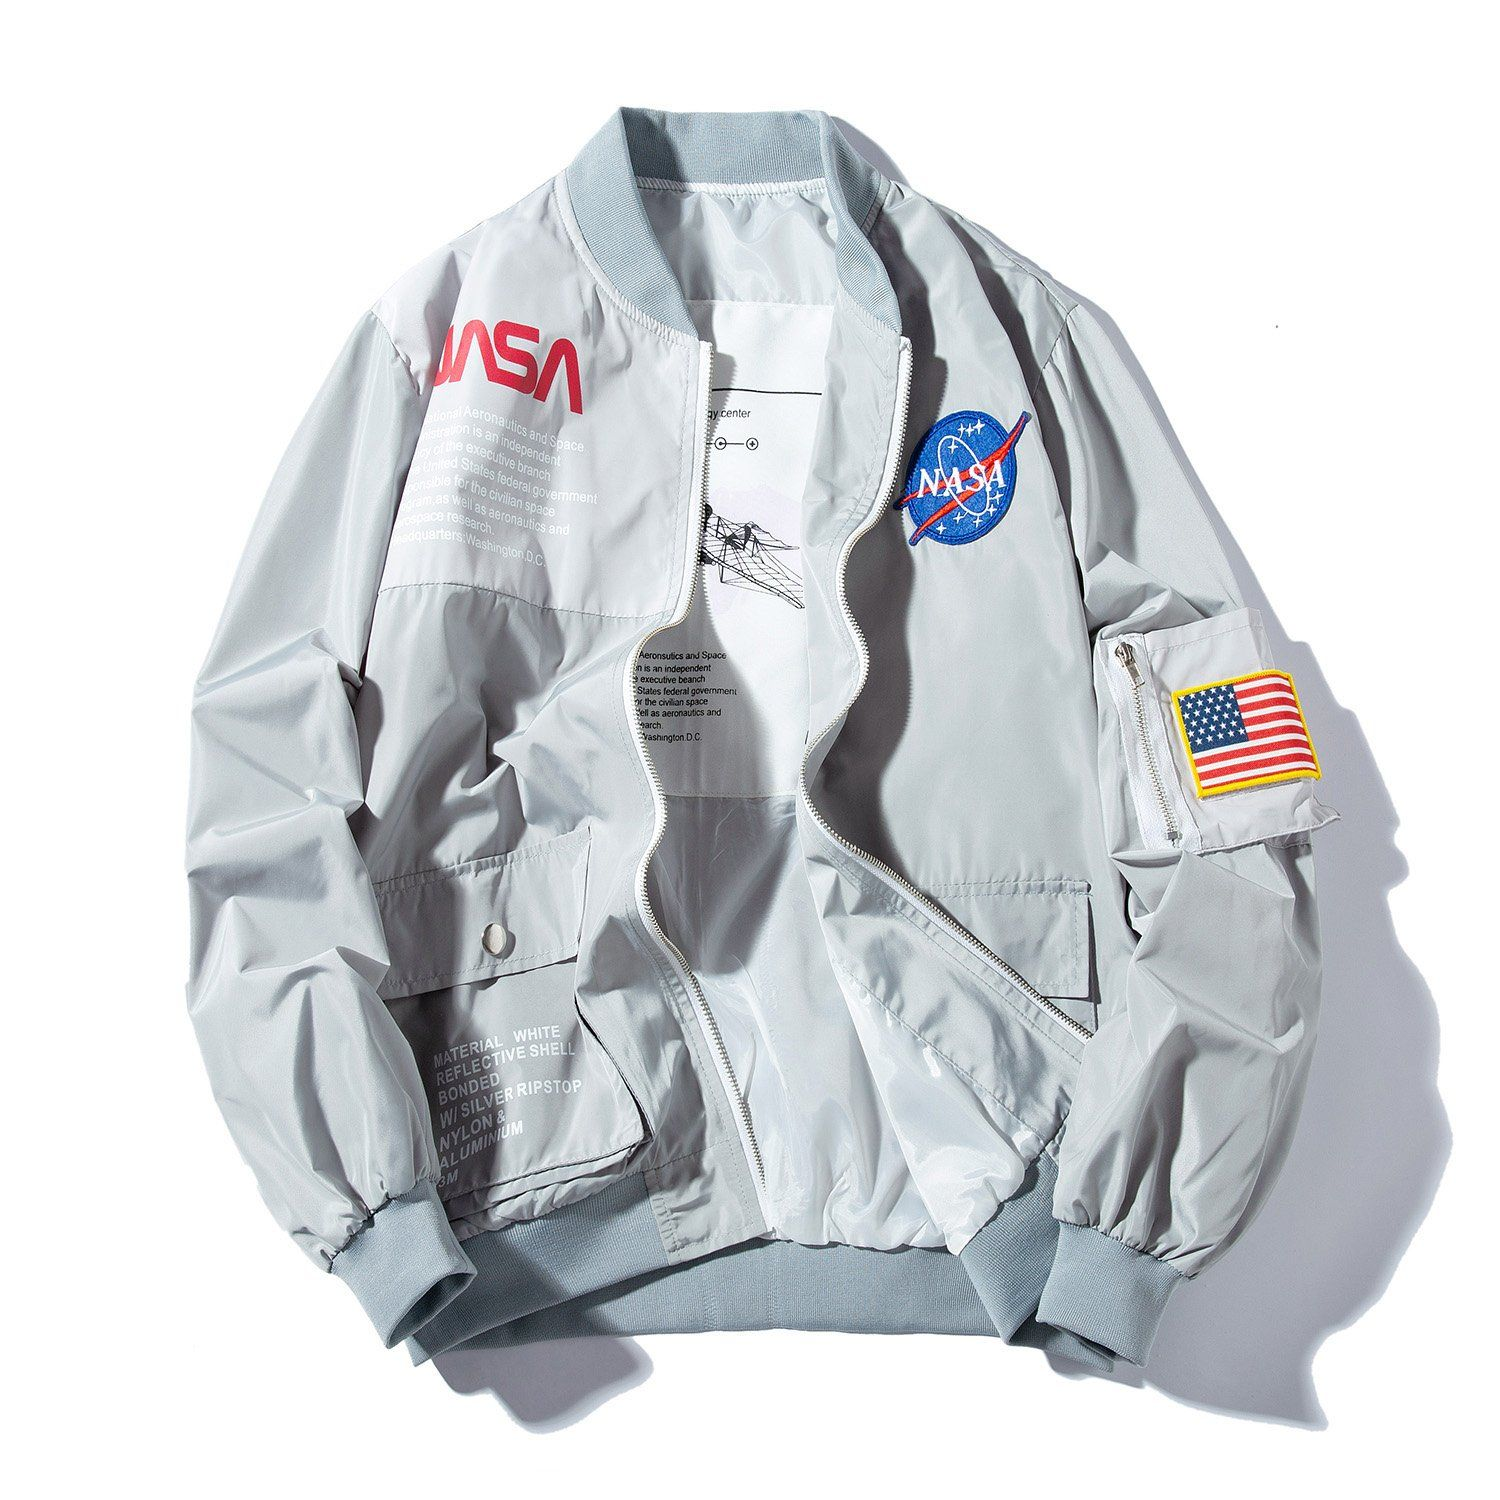 Moonlander Bomber Jacket in 2020 Nasa clothes, Nasa